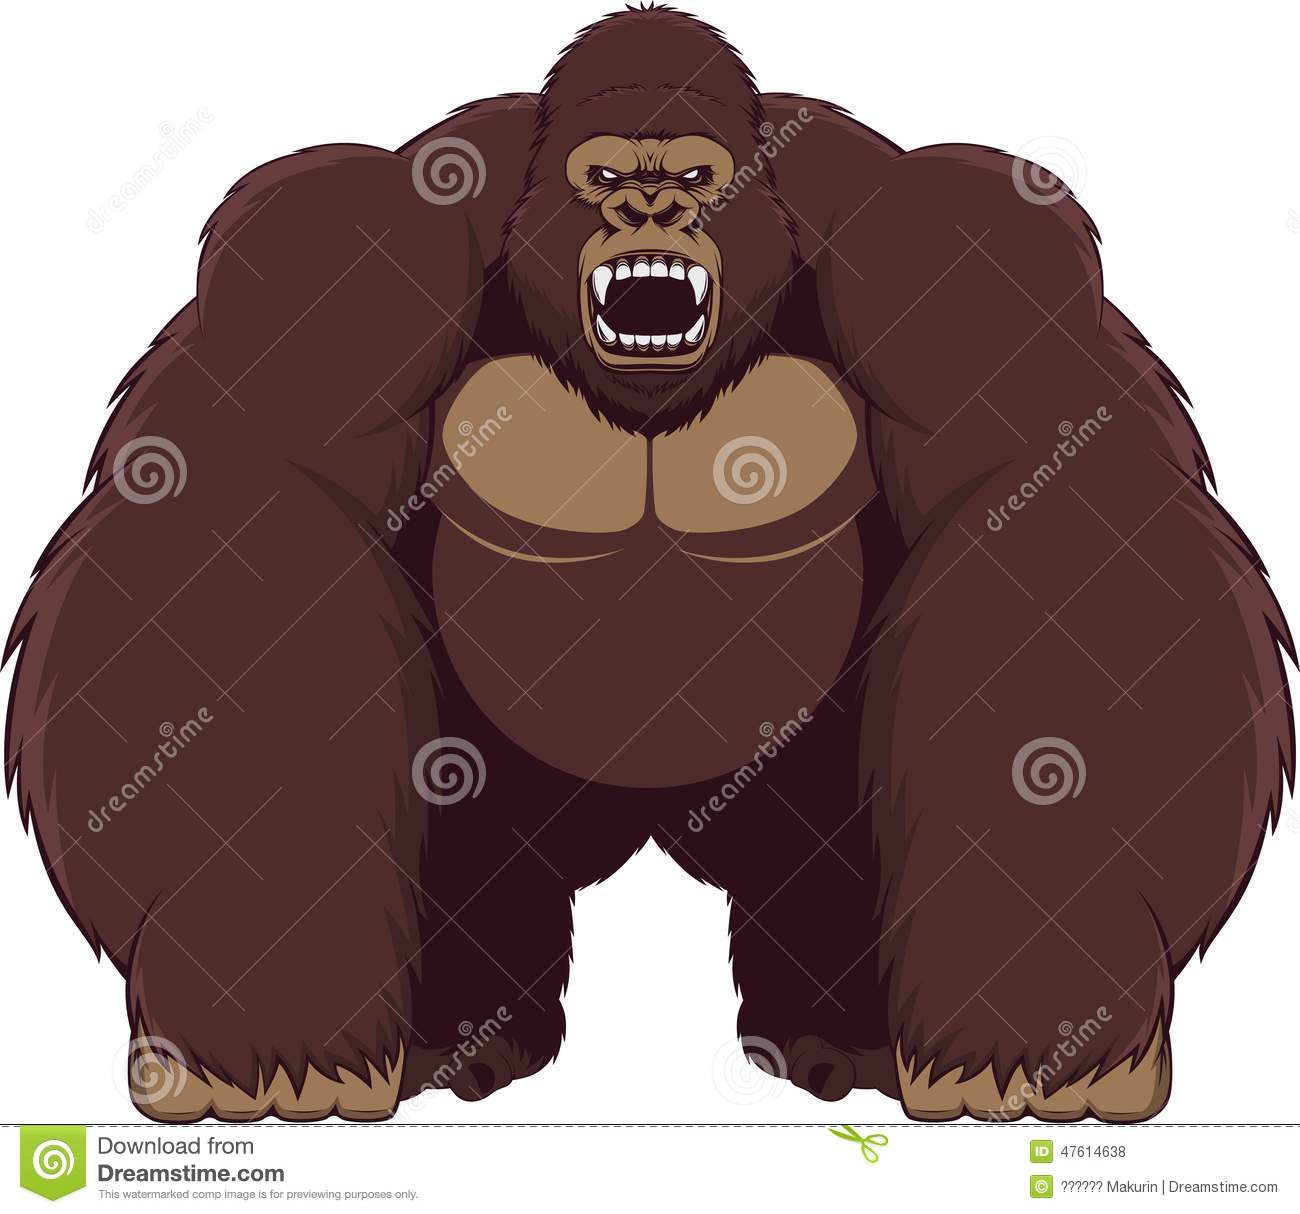 Angry gorilla clipart.